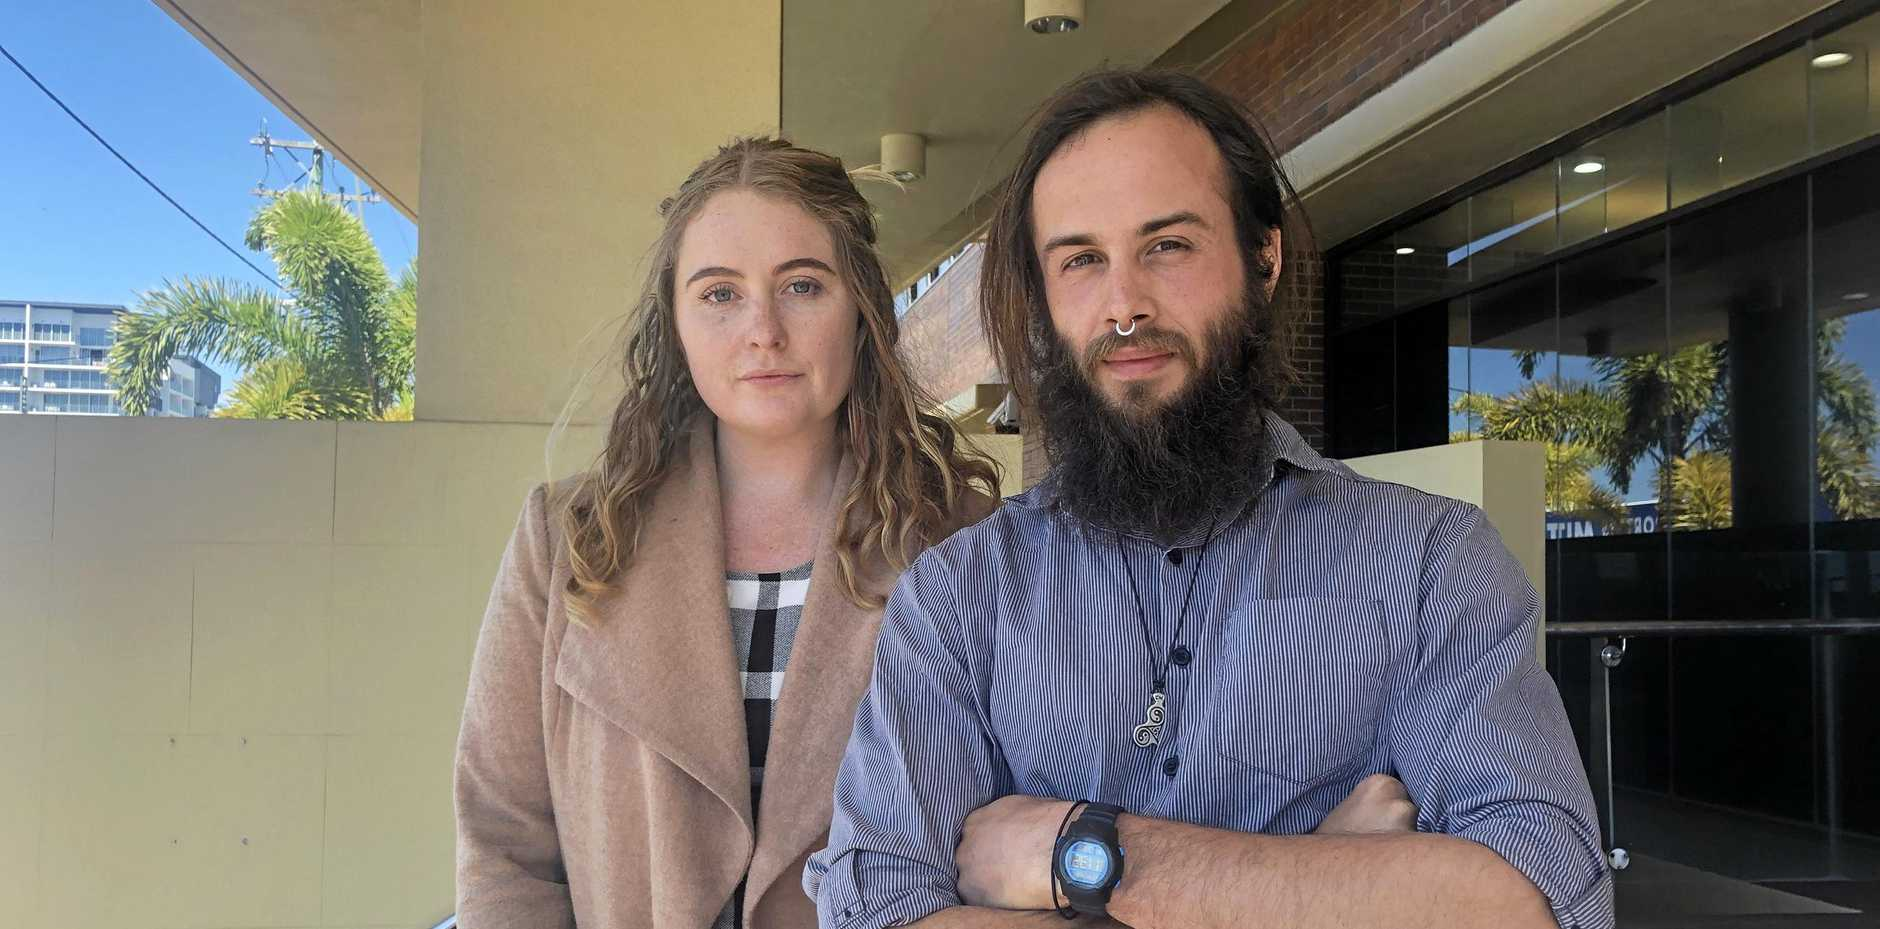 Amy Francis Booth, 25, and Reuben Michael Anstee, 28, are accused of causing more than $12,000 damage when they suspended themselves from poles at Adani's Carmichael mine site.